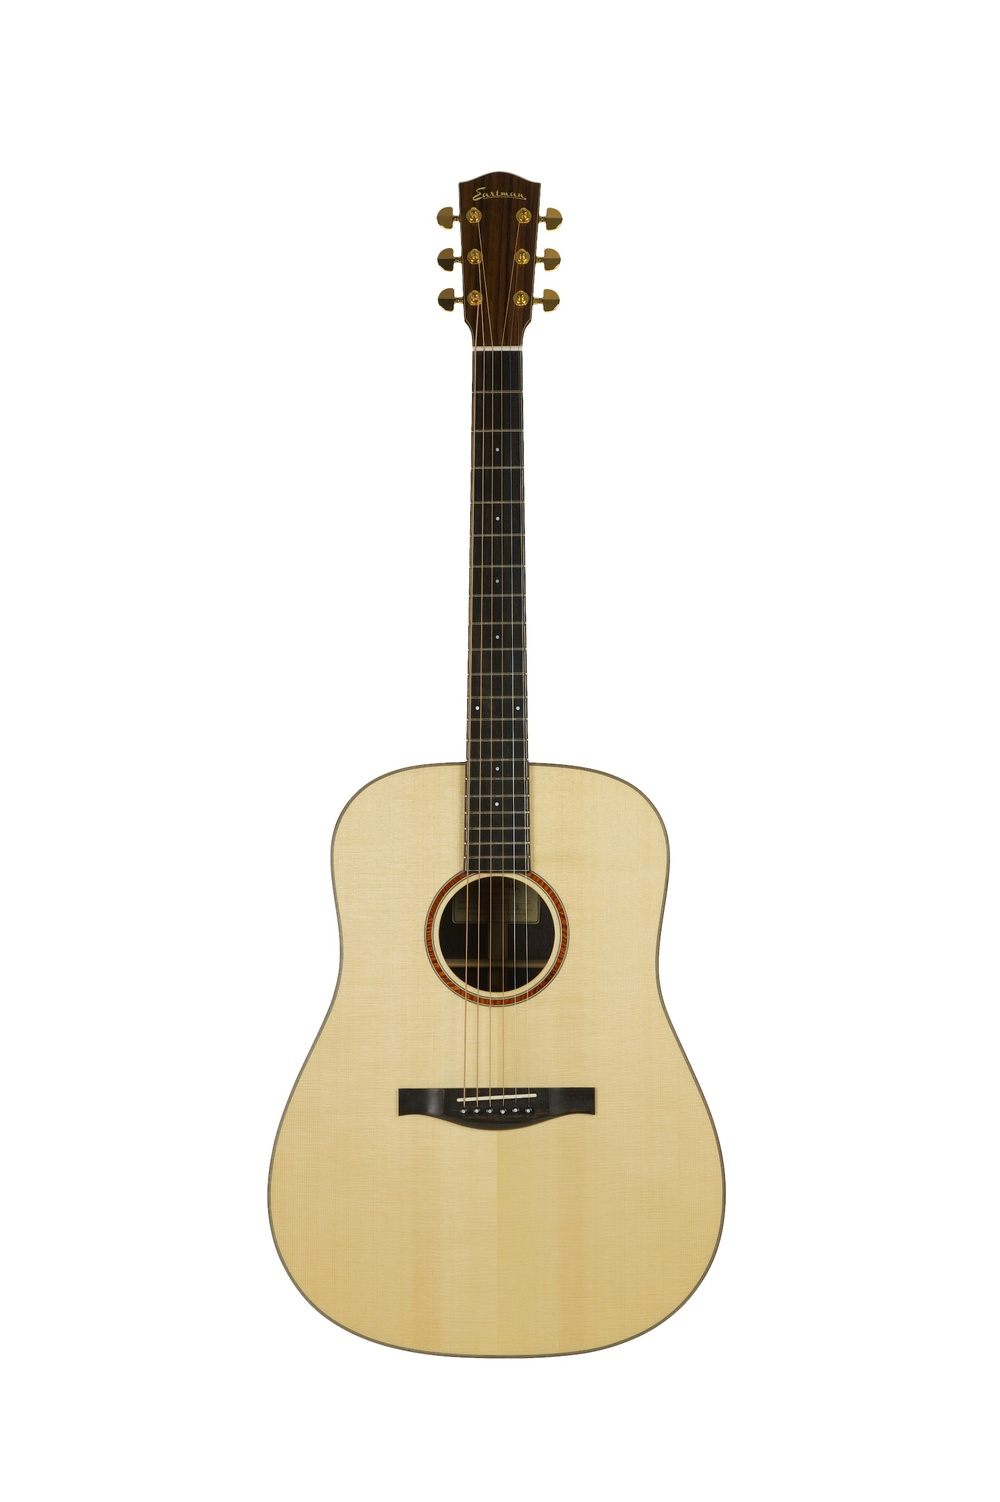 AC720 Suggested retail price: $1,750